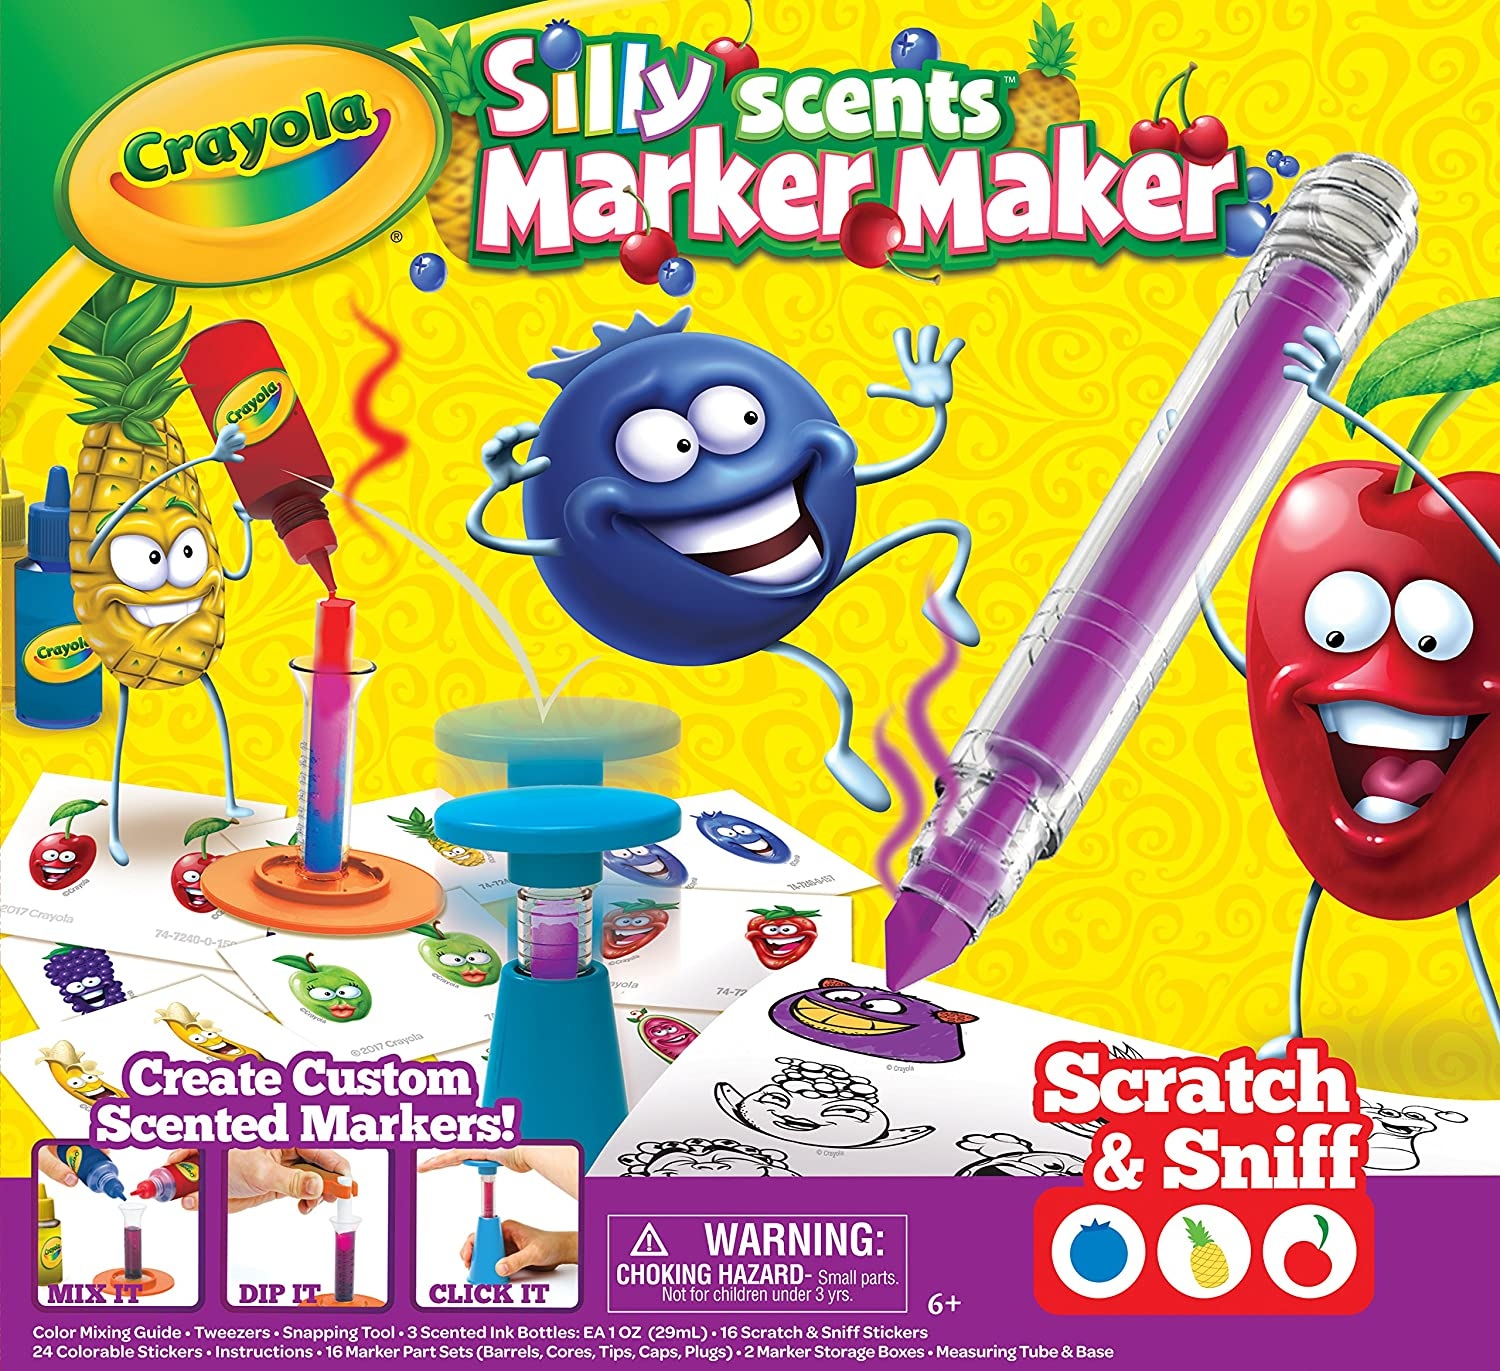 You can buy the Crayola Silly Scents Marker Maker here